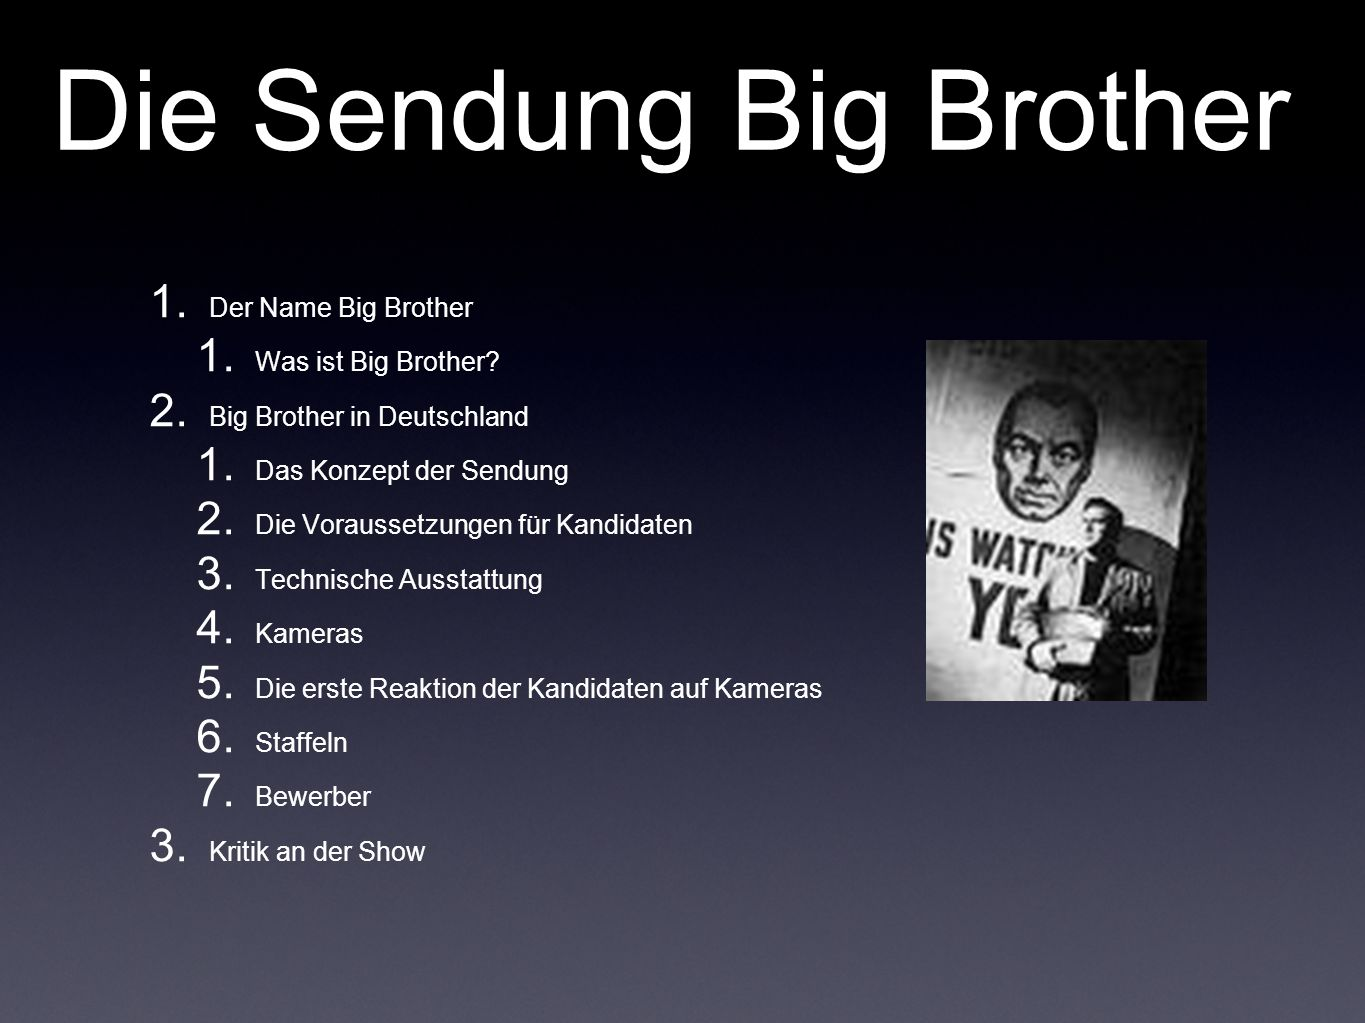 Die Sendung Big Brother